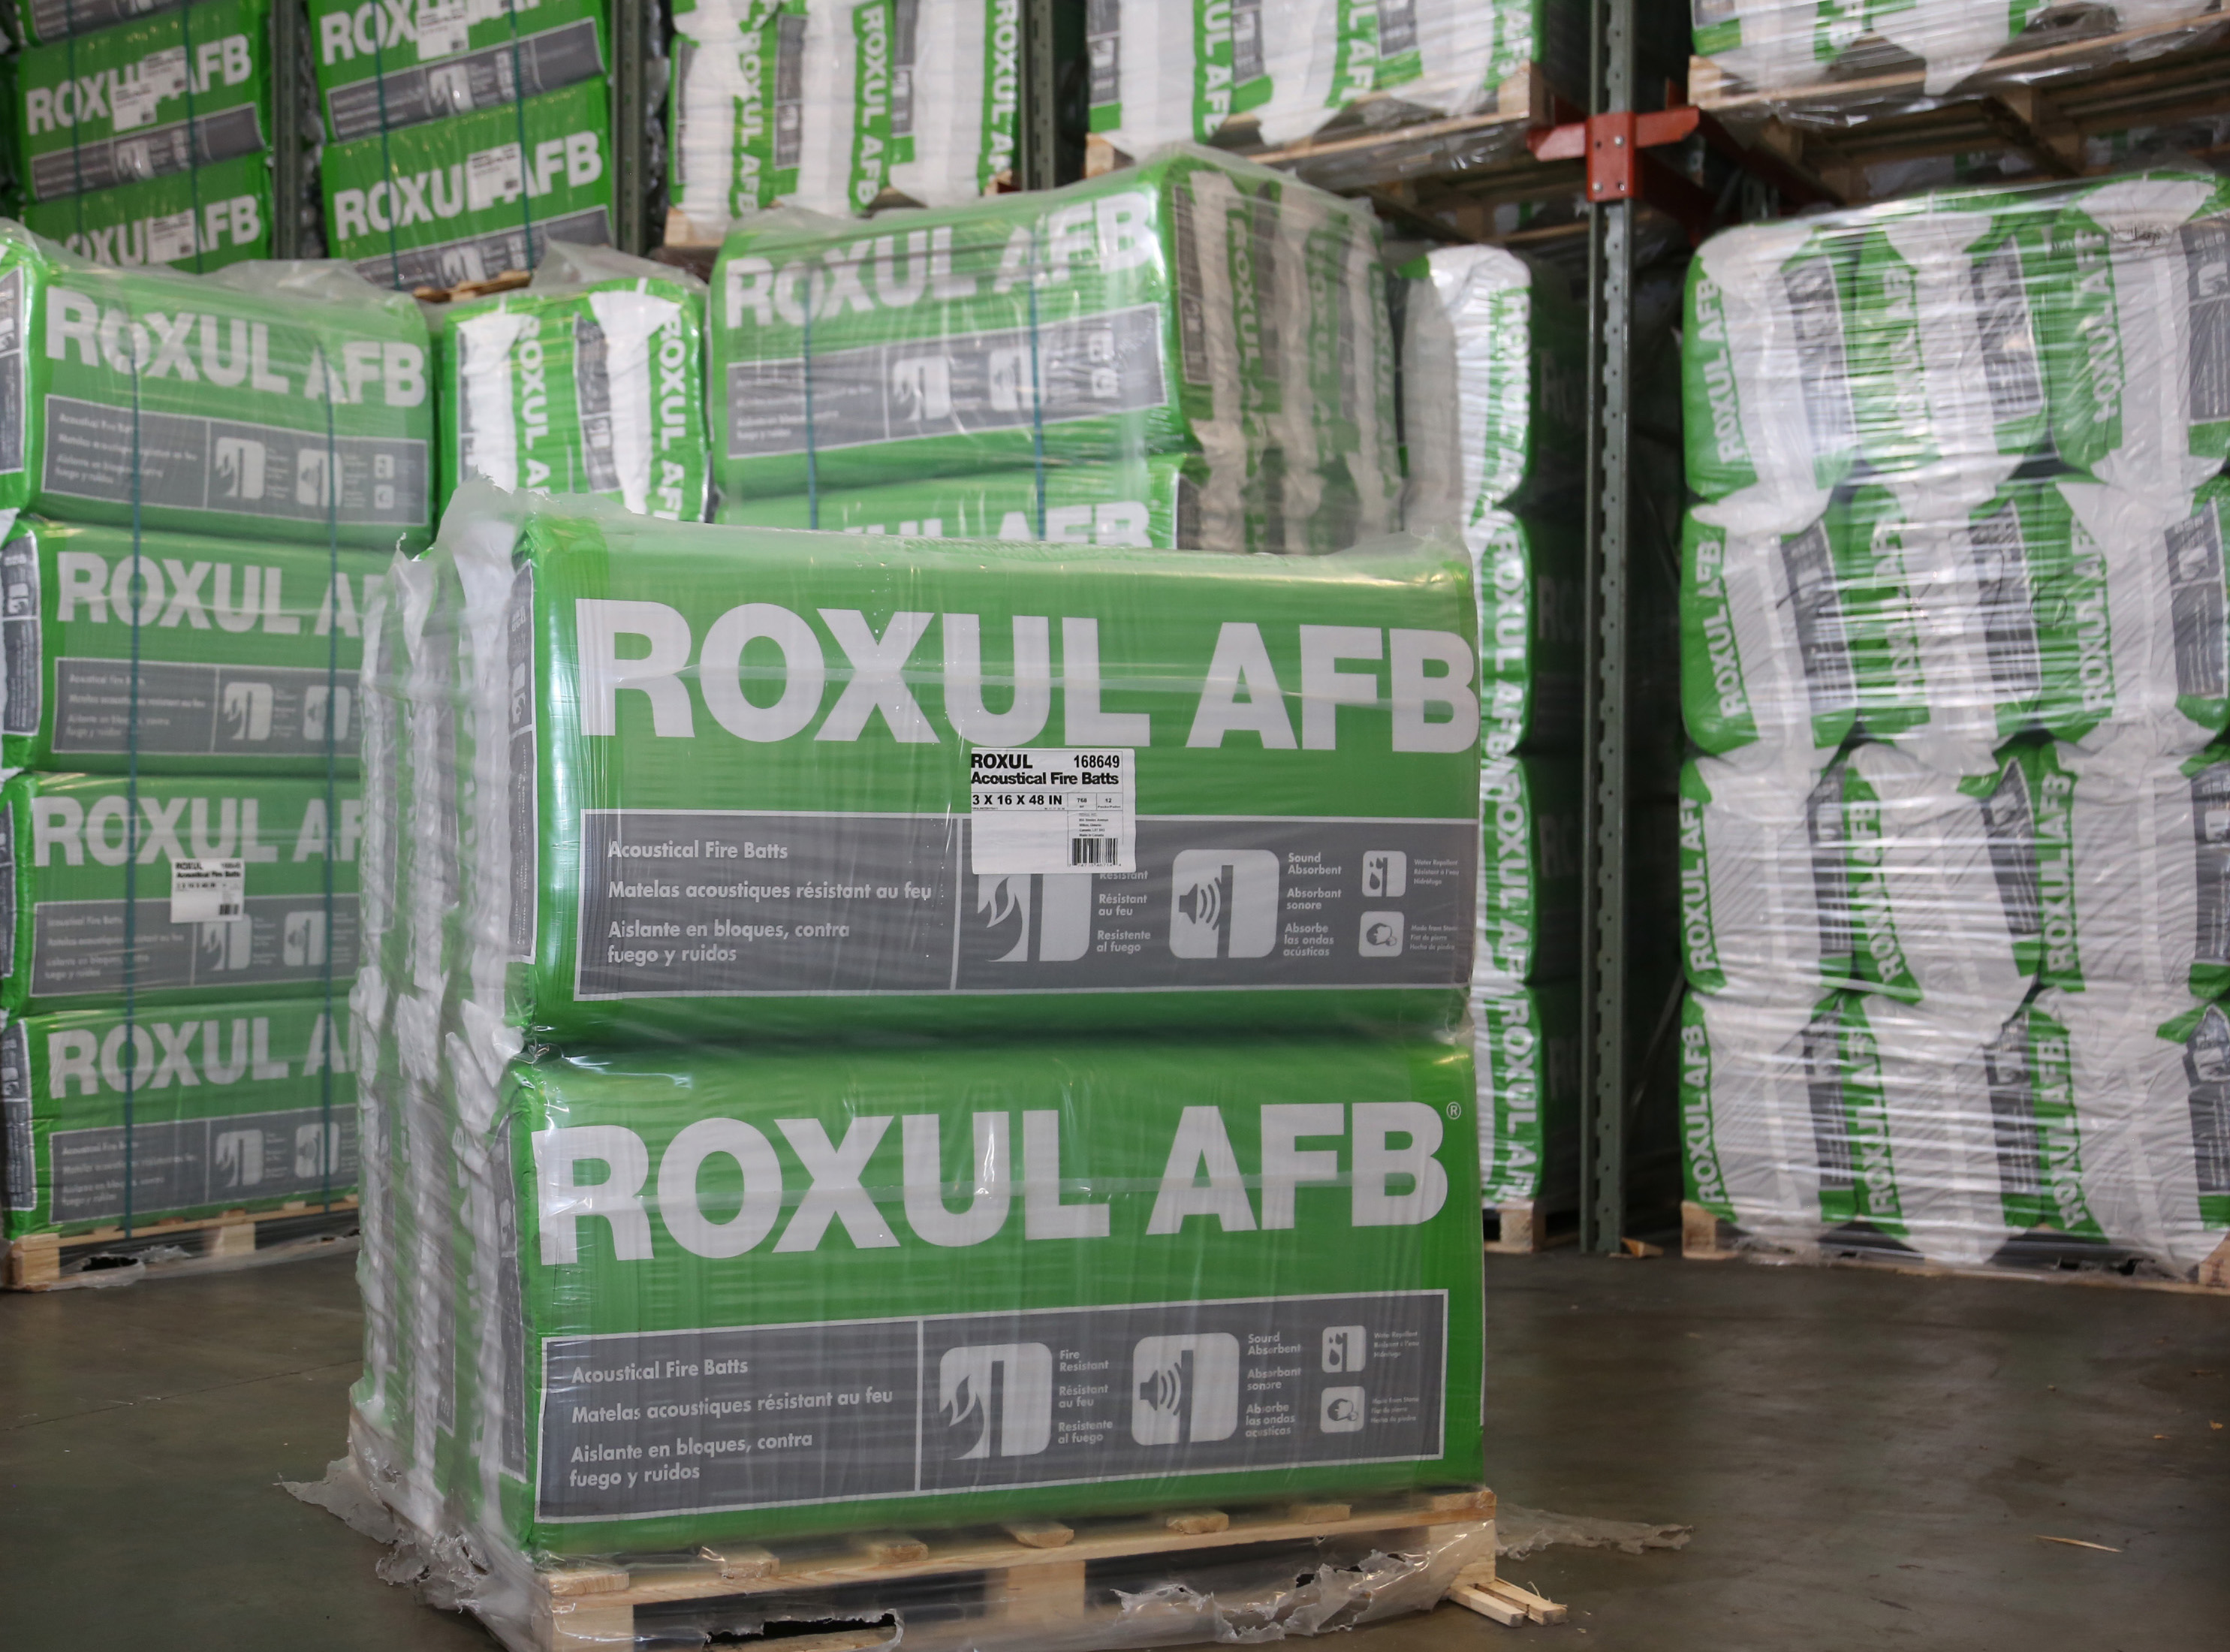 Roxul mineral wool lnsulation building materials for Roxul insulation r value